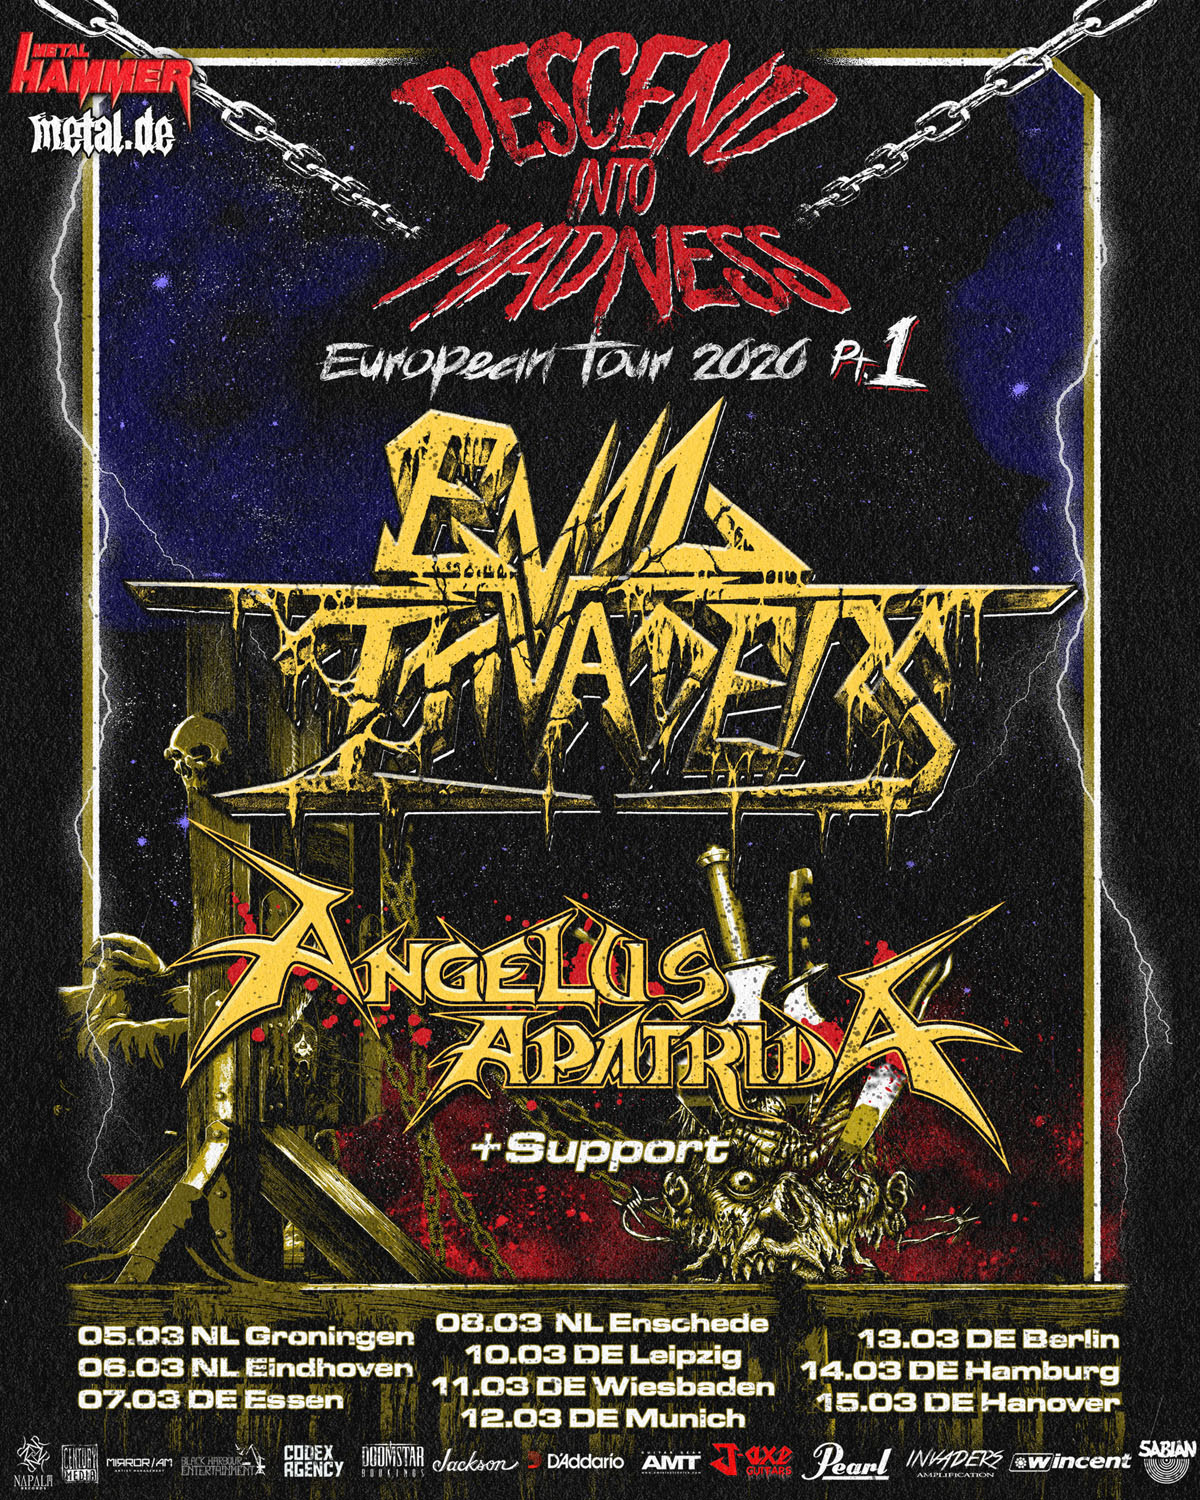 Evil Invaders Descend Into Madness Tour